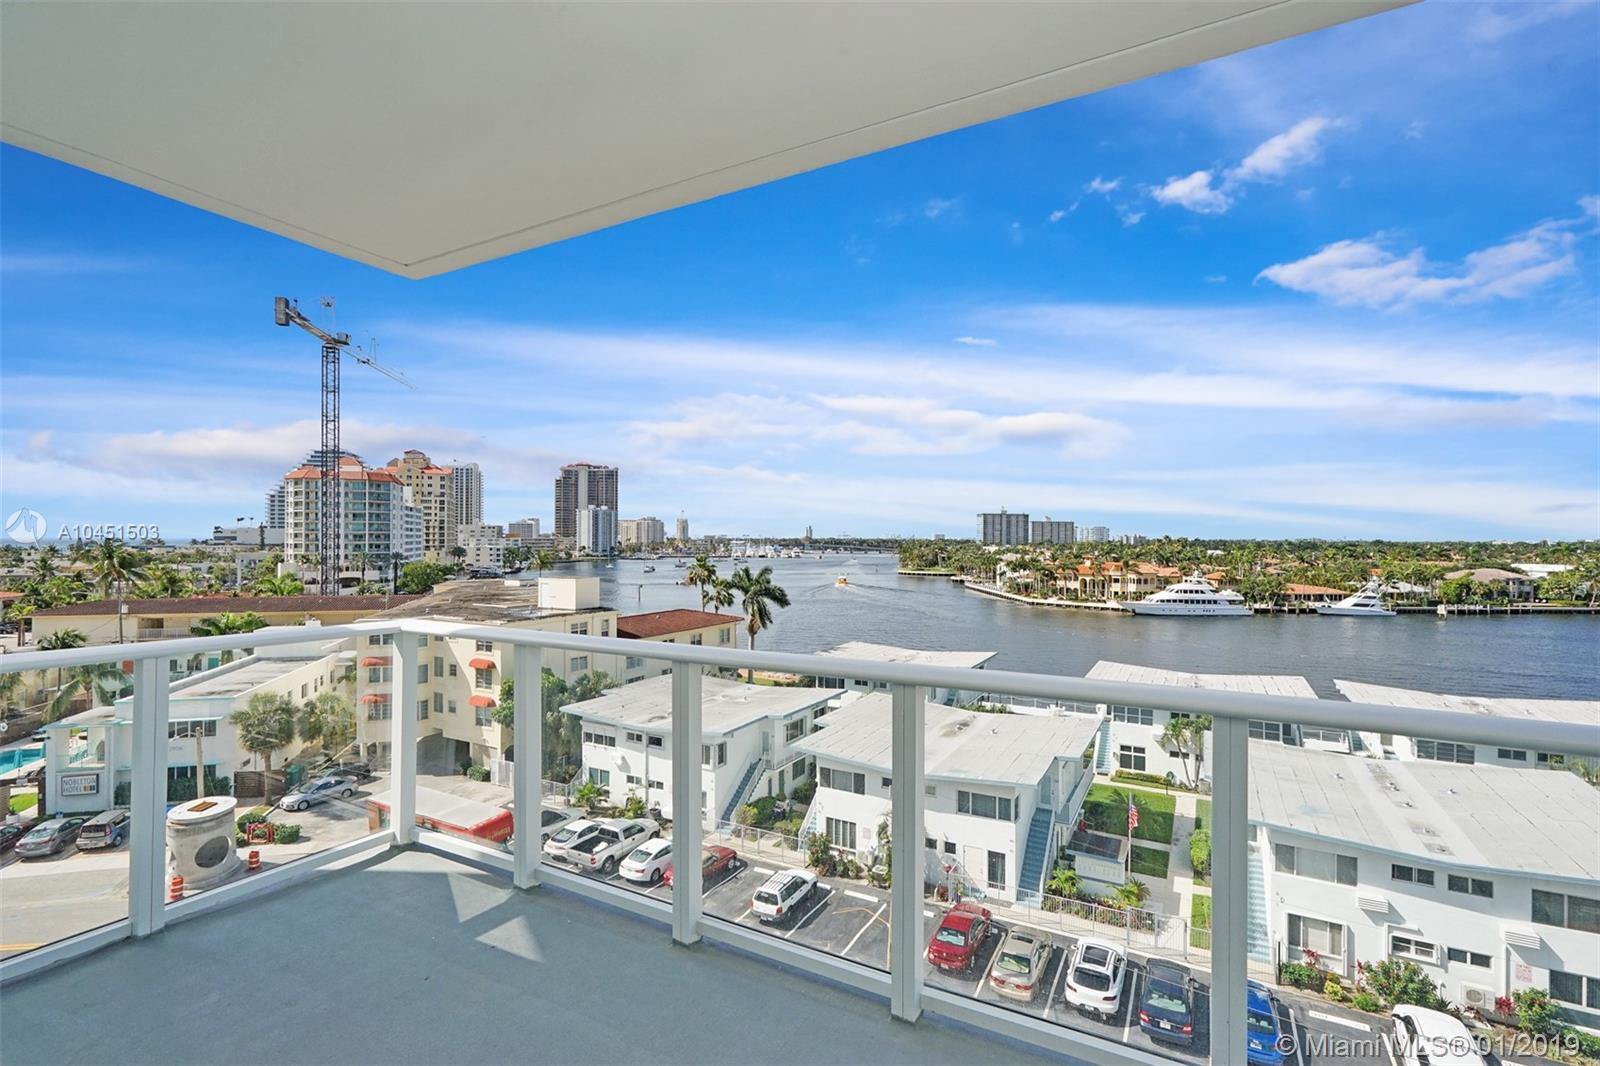 Brand New Unit - gorgeous direct intracoastal views! Enjoy the sunset on your oversized balcony.  This unit modern open-style is beautifully finished.  The kitchen boast of Italian cabinets and contemporary hardware, top of the line appliances, and stone countertops as well as a laundry room with full size washer/dryer.  Top of the line amenities including 24/7 valet, lobby attendant, roof top pool with intracoastal views, club room with full kitchen and bar area, wifi in common areas and so much more.  Currently has a tenant in the unit.